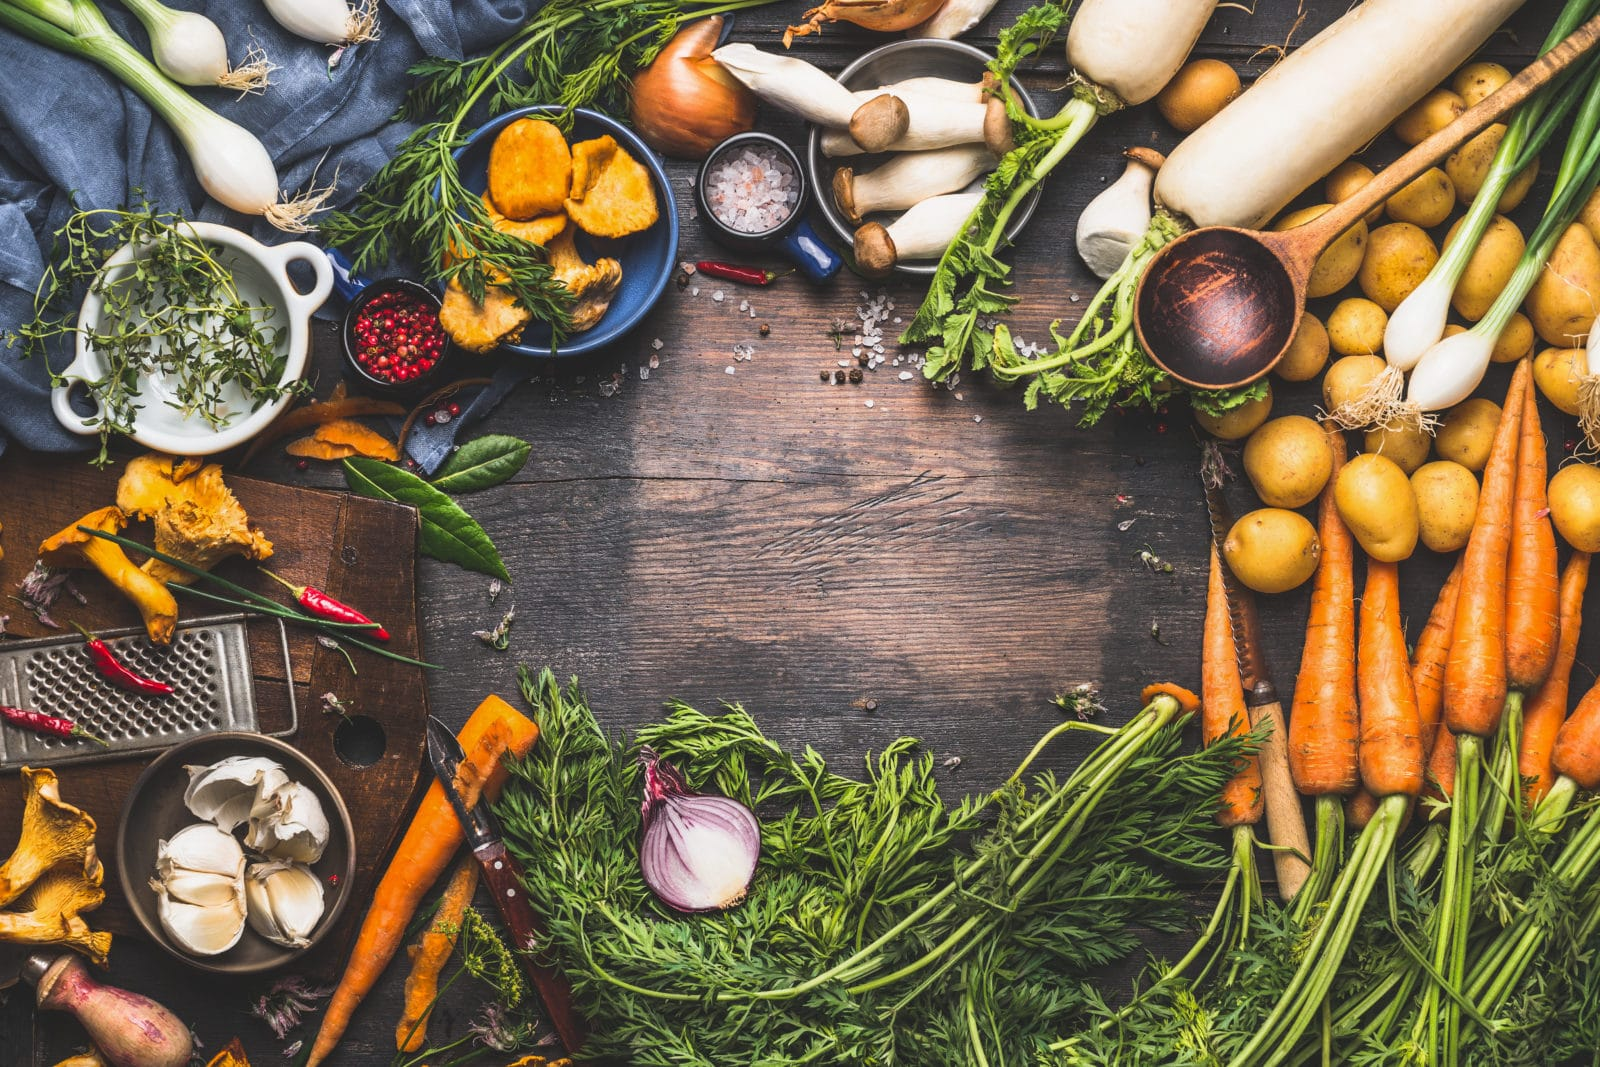 plant-based holiday, Use Plant-Based Holidays to Spark Better Health, Pain Relief